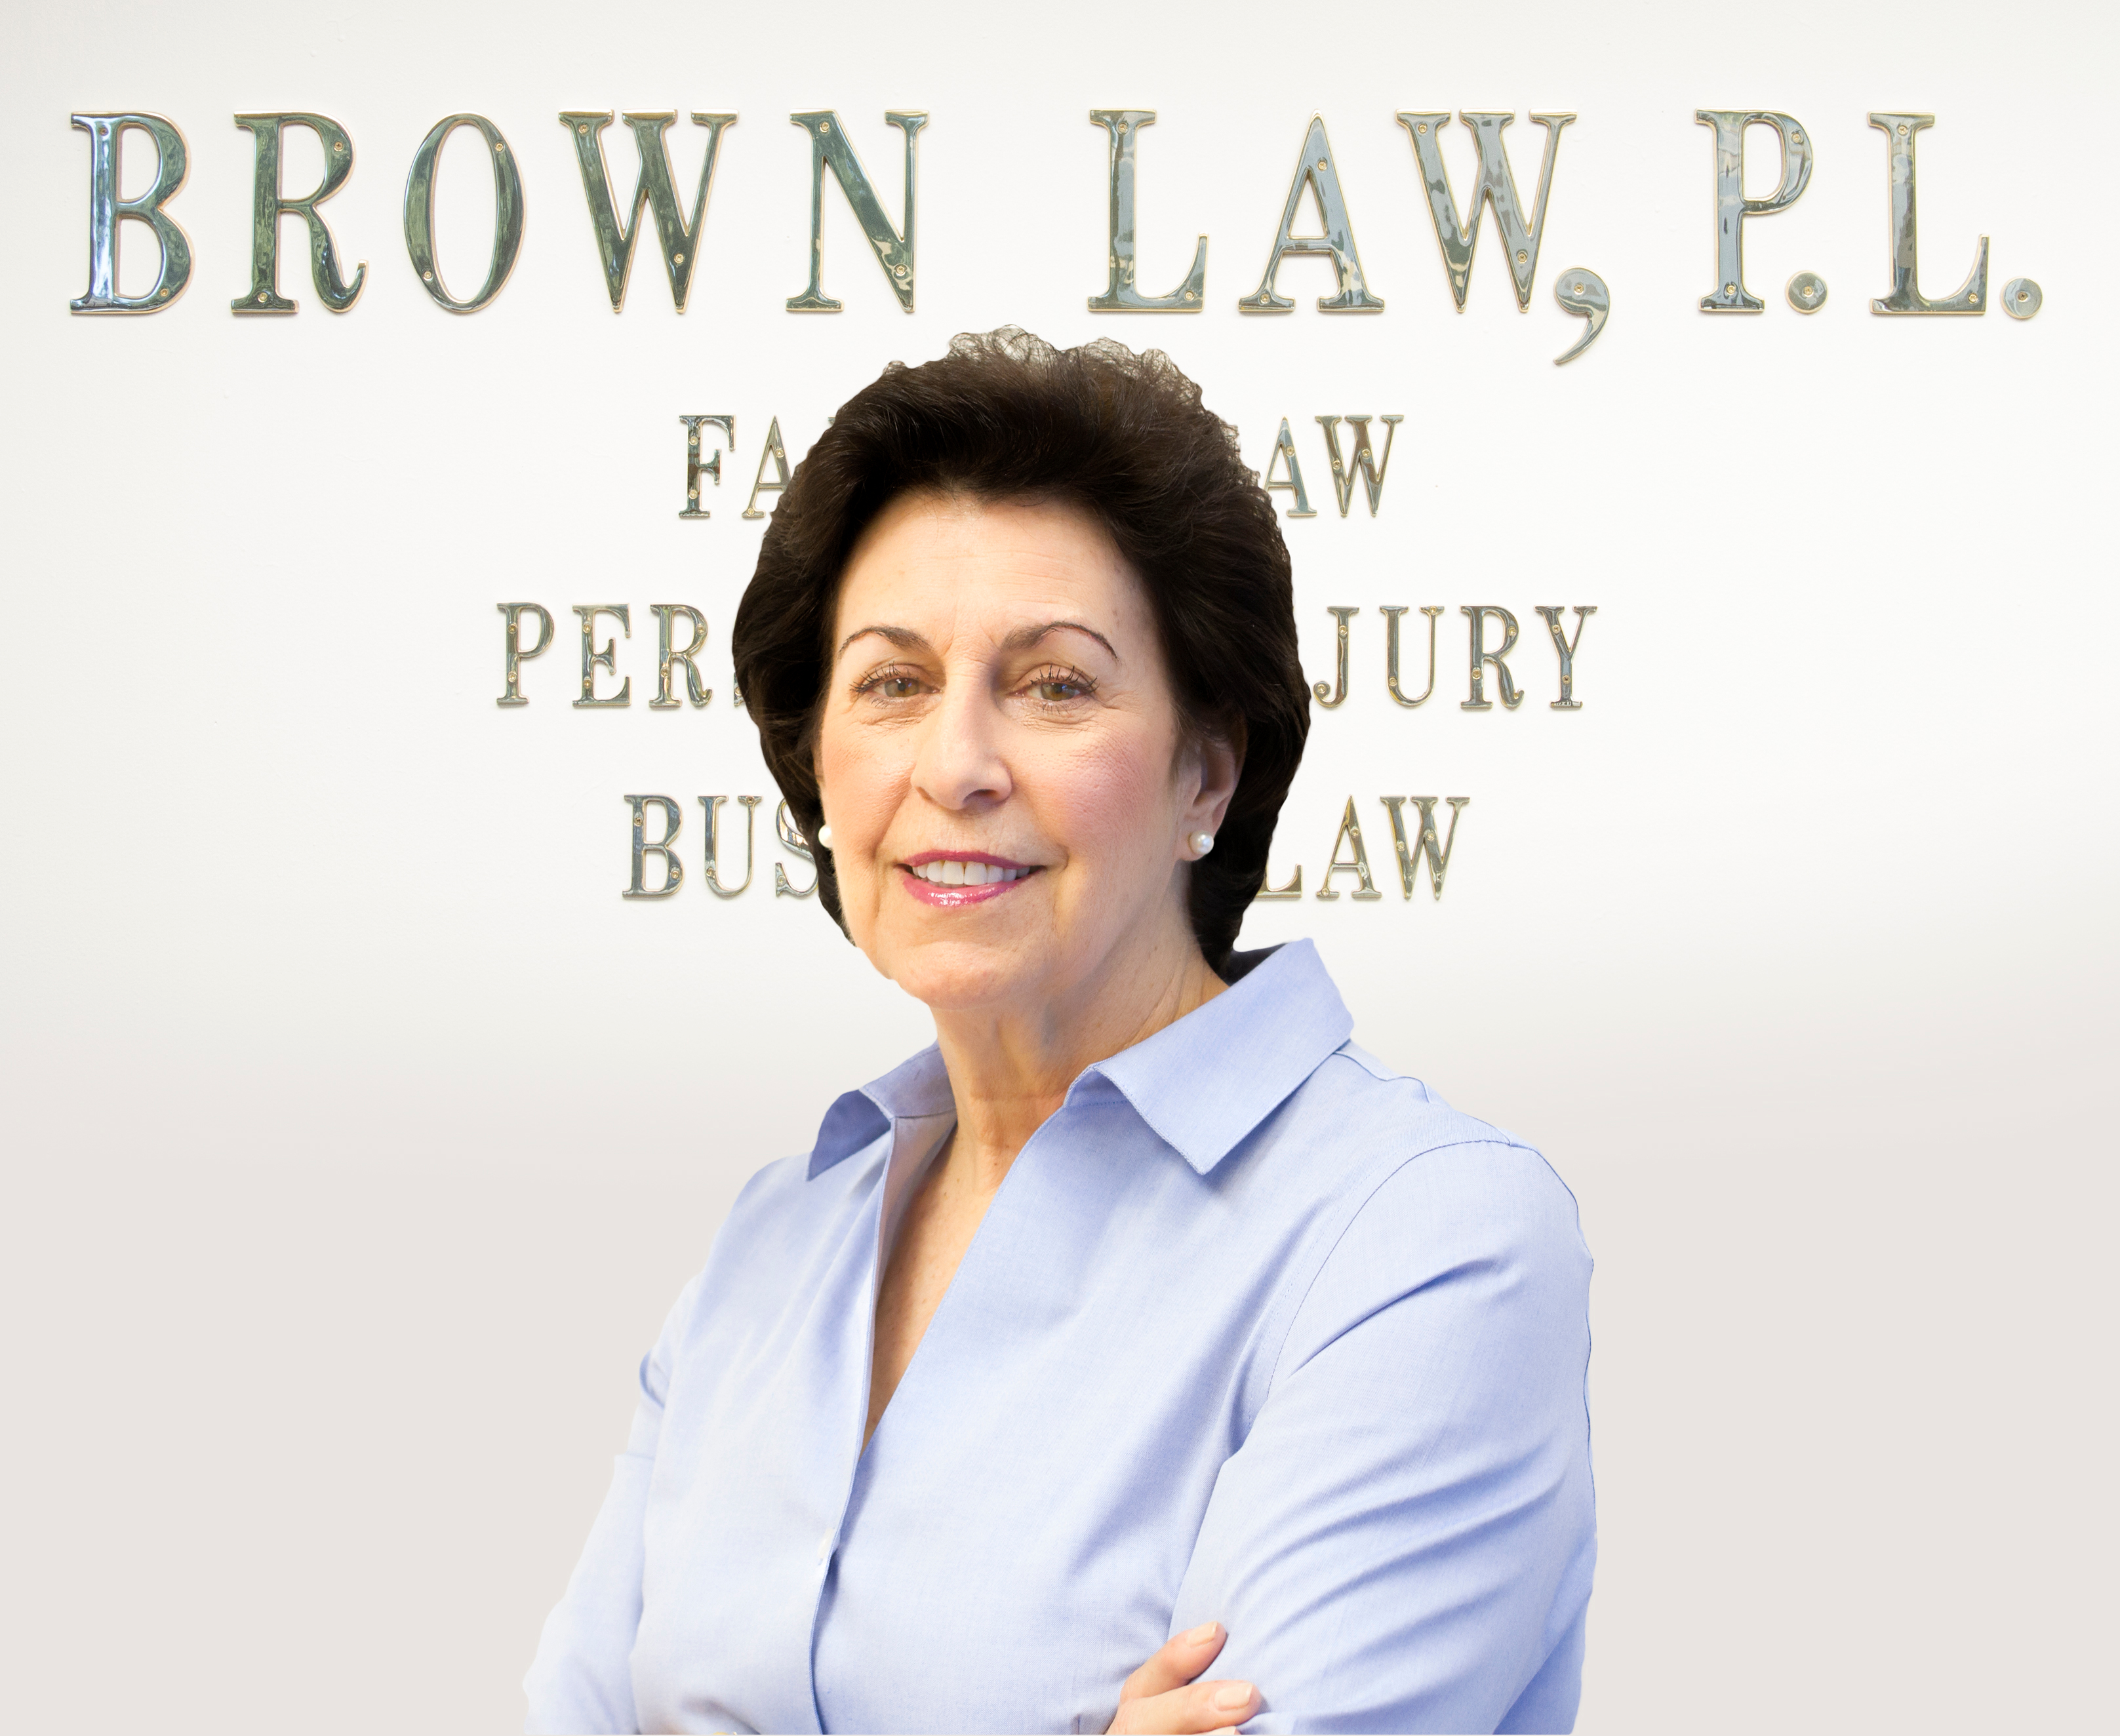 image of Brown Law, P. L.